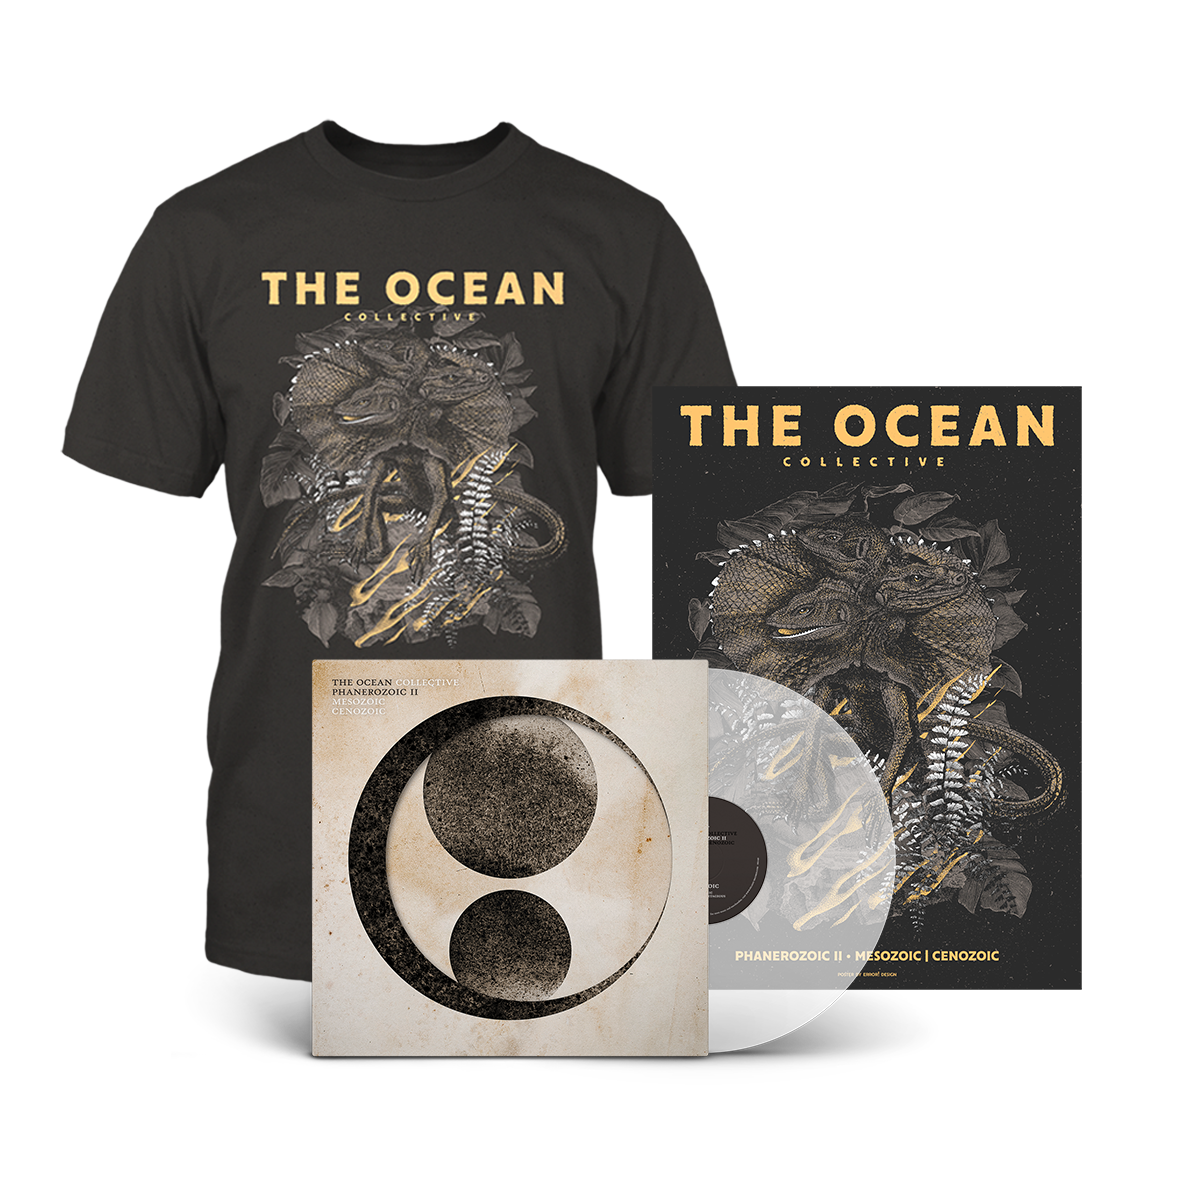 THE OCEAN // PHANEROZOIC II - VINYL BUNDLE (CLEAR LP) - Wild Thing Records